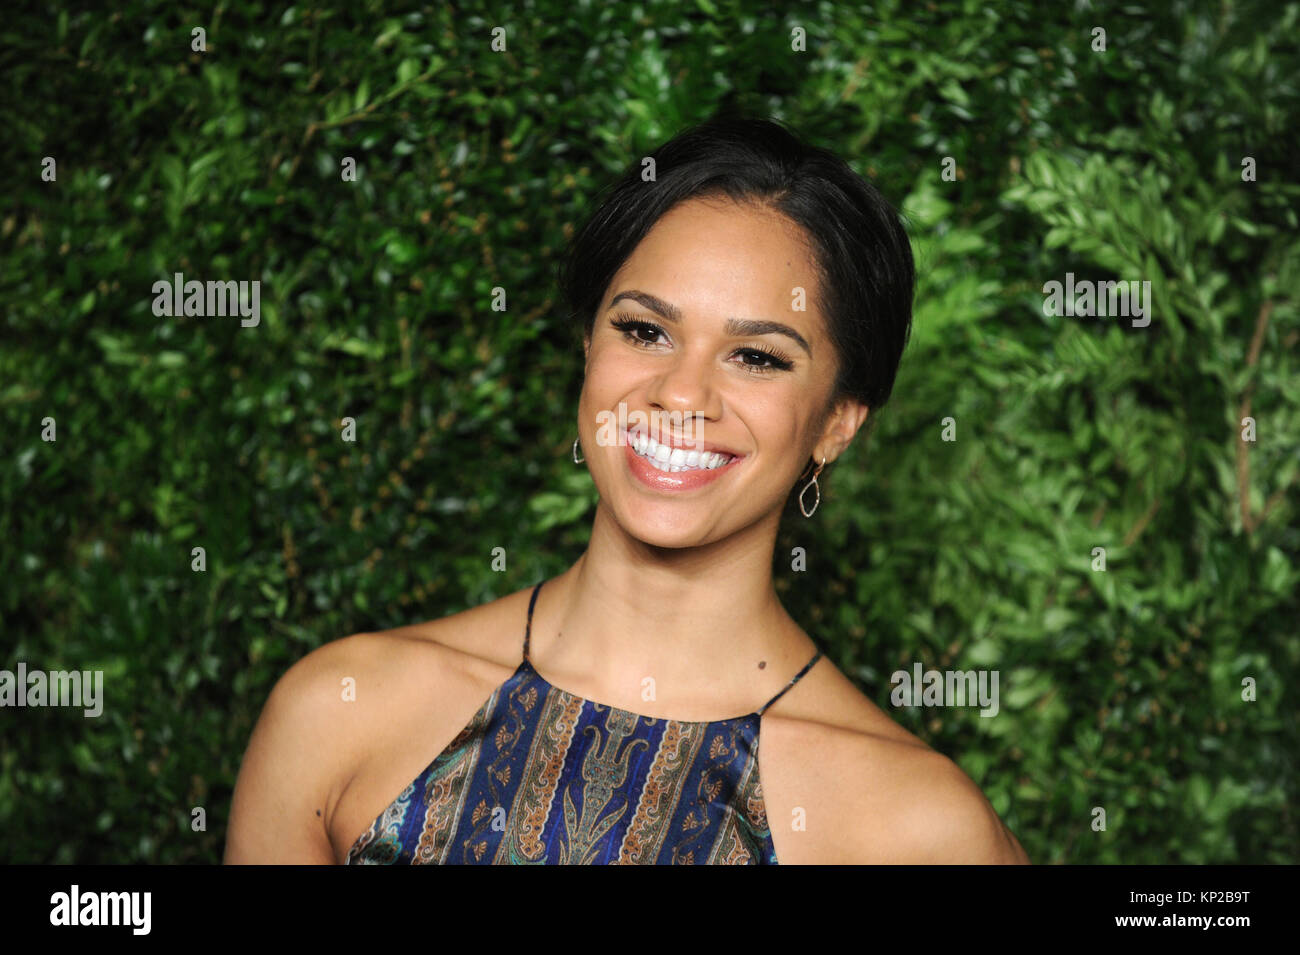 NEW YORK, NY - NOVEMBER 02: Misty Copeland attends the 12th annual CFDA/Vogue Fashion Fund Awards at Spring Studios - Stock Image